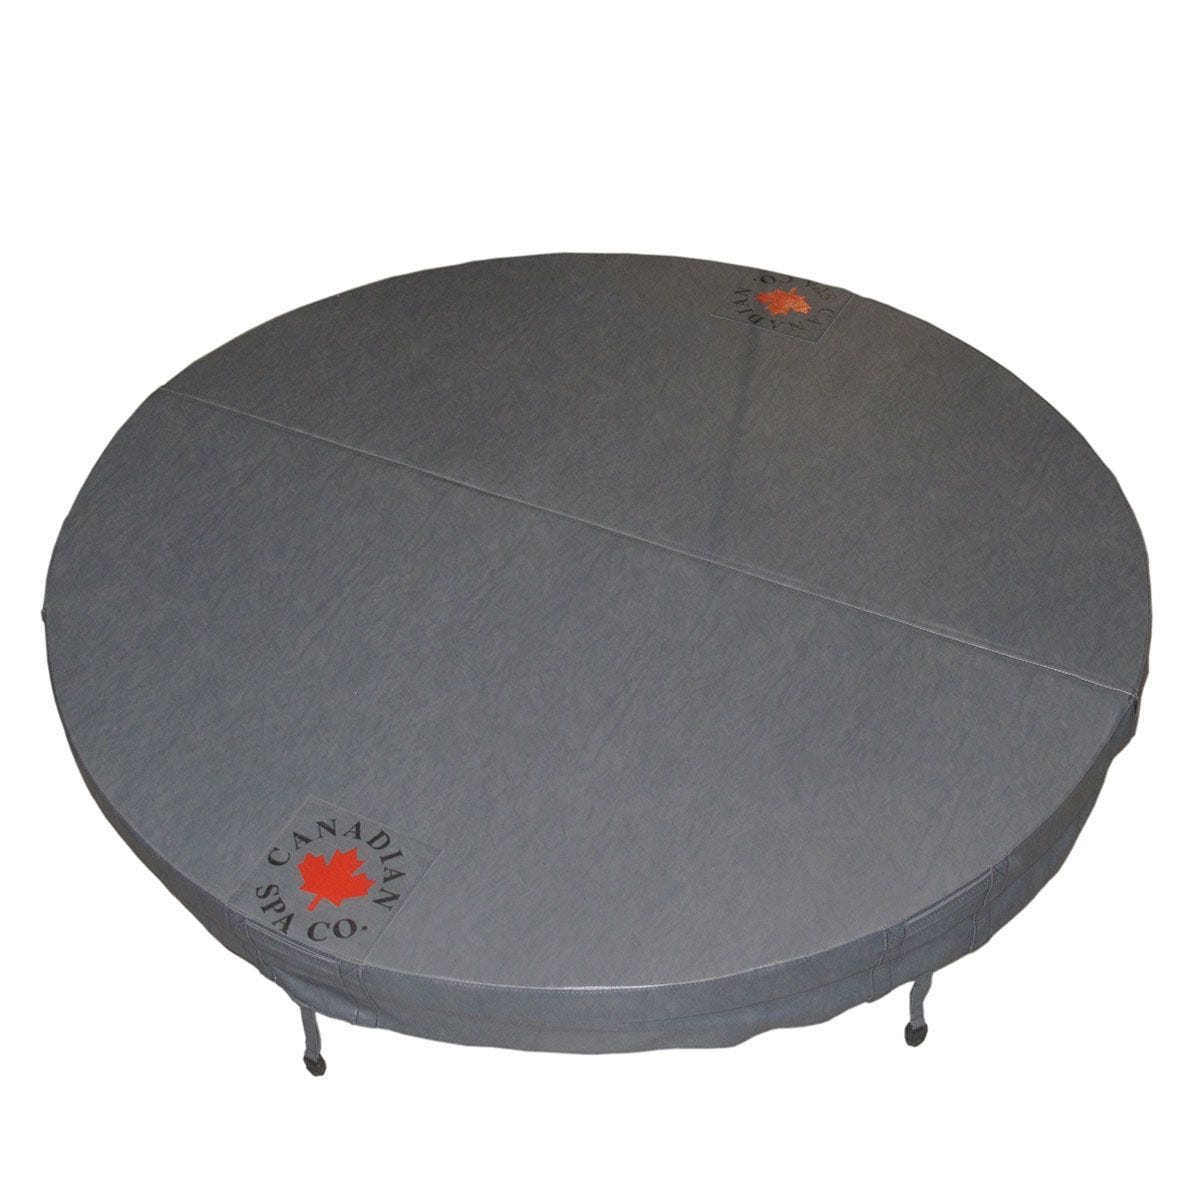 Canadian Spa Round Hot Tub Cover - Grey